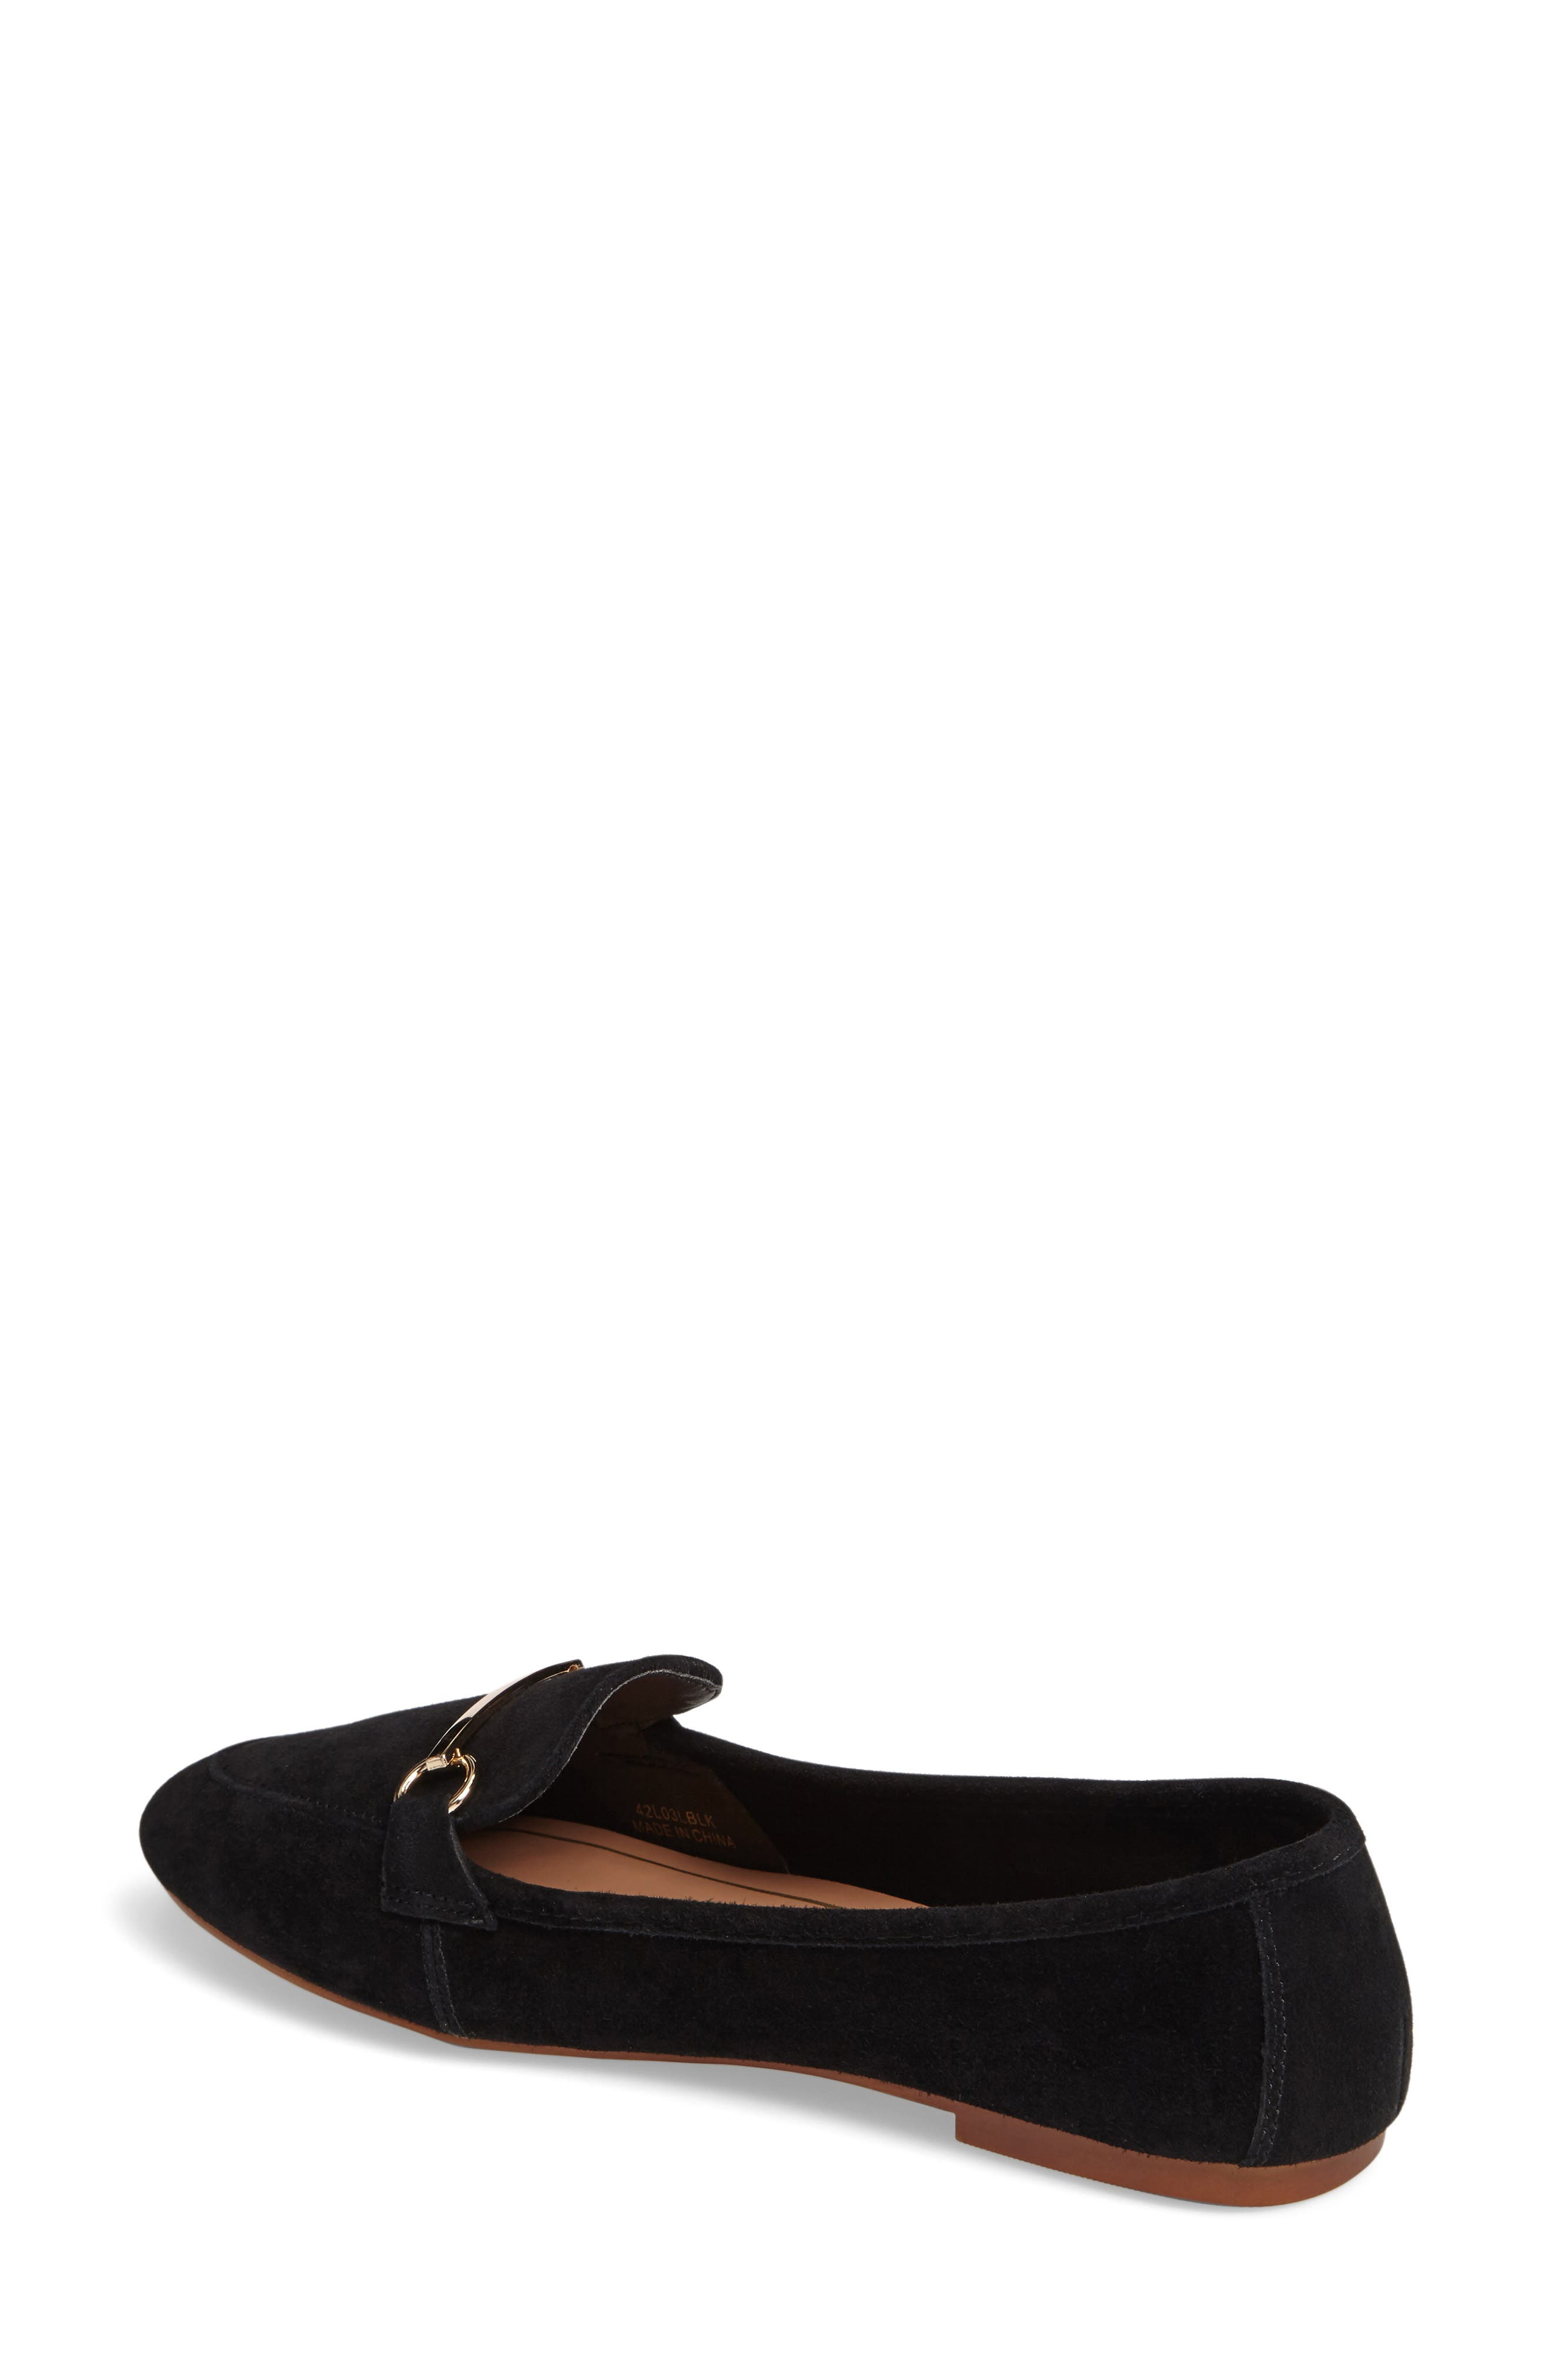 Libby Softy Loafer,                             Alternate thumbnail 2, color,                             001